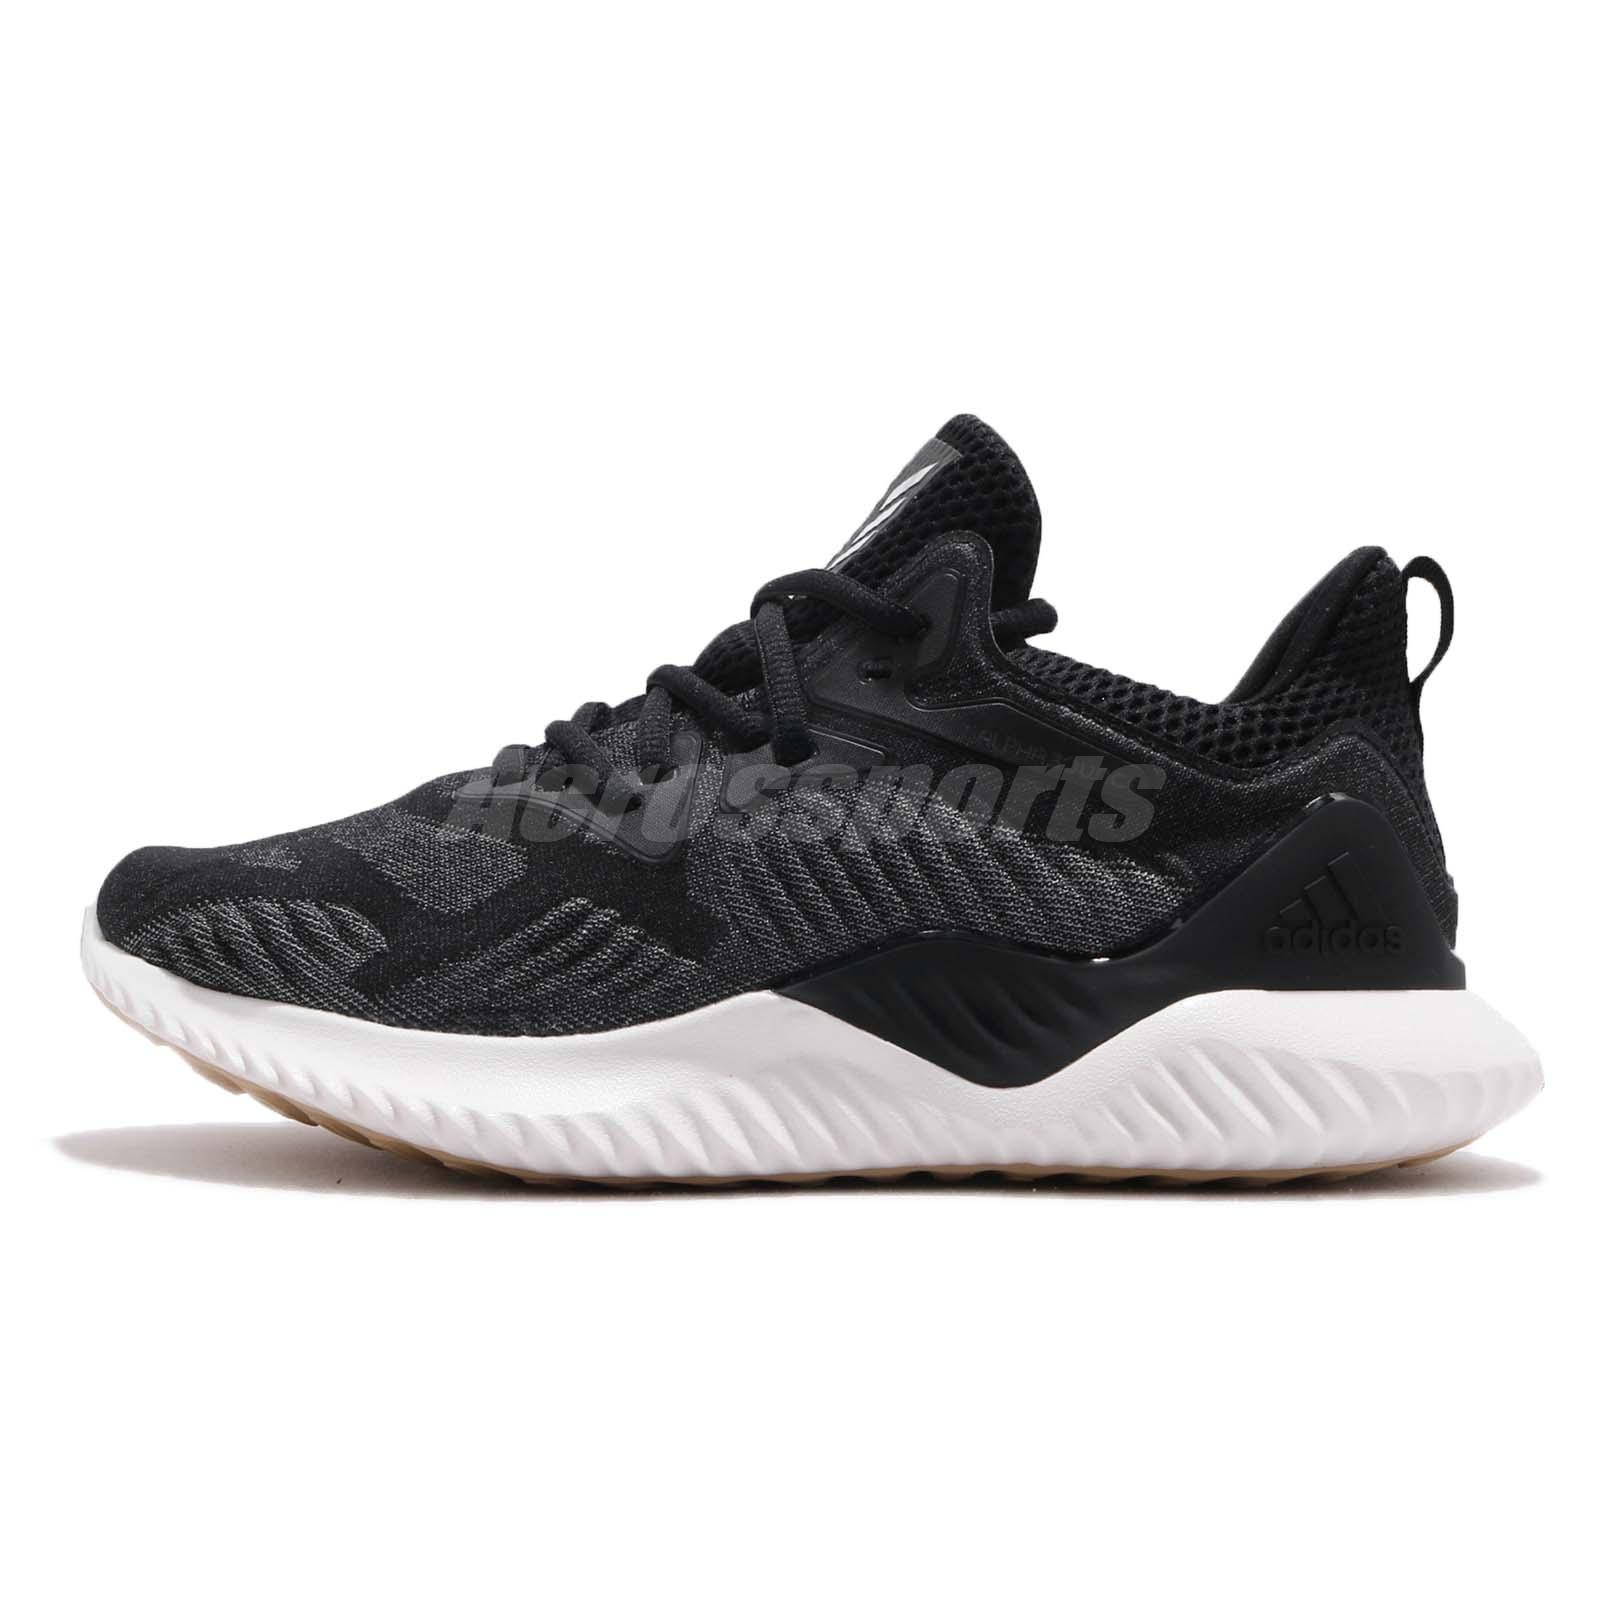 uk availability 904b1 9fce6 adidas Alphabounce Beyond W Black White Women Running Shoes Sneakers CG5581